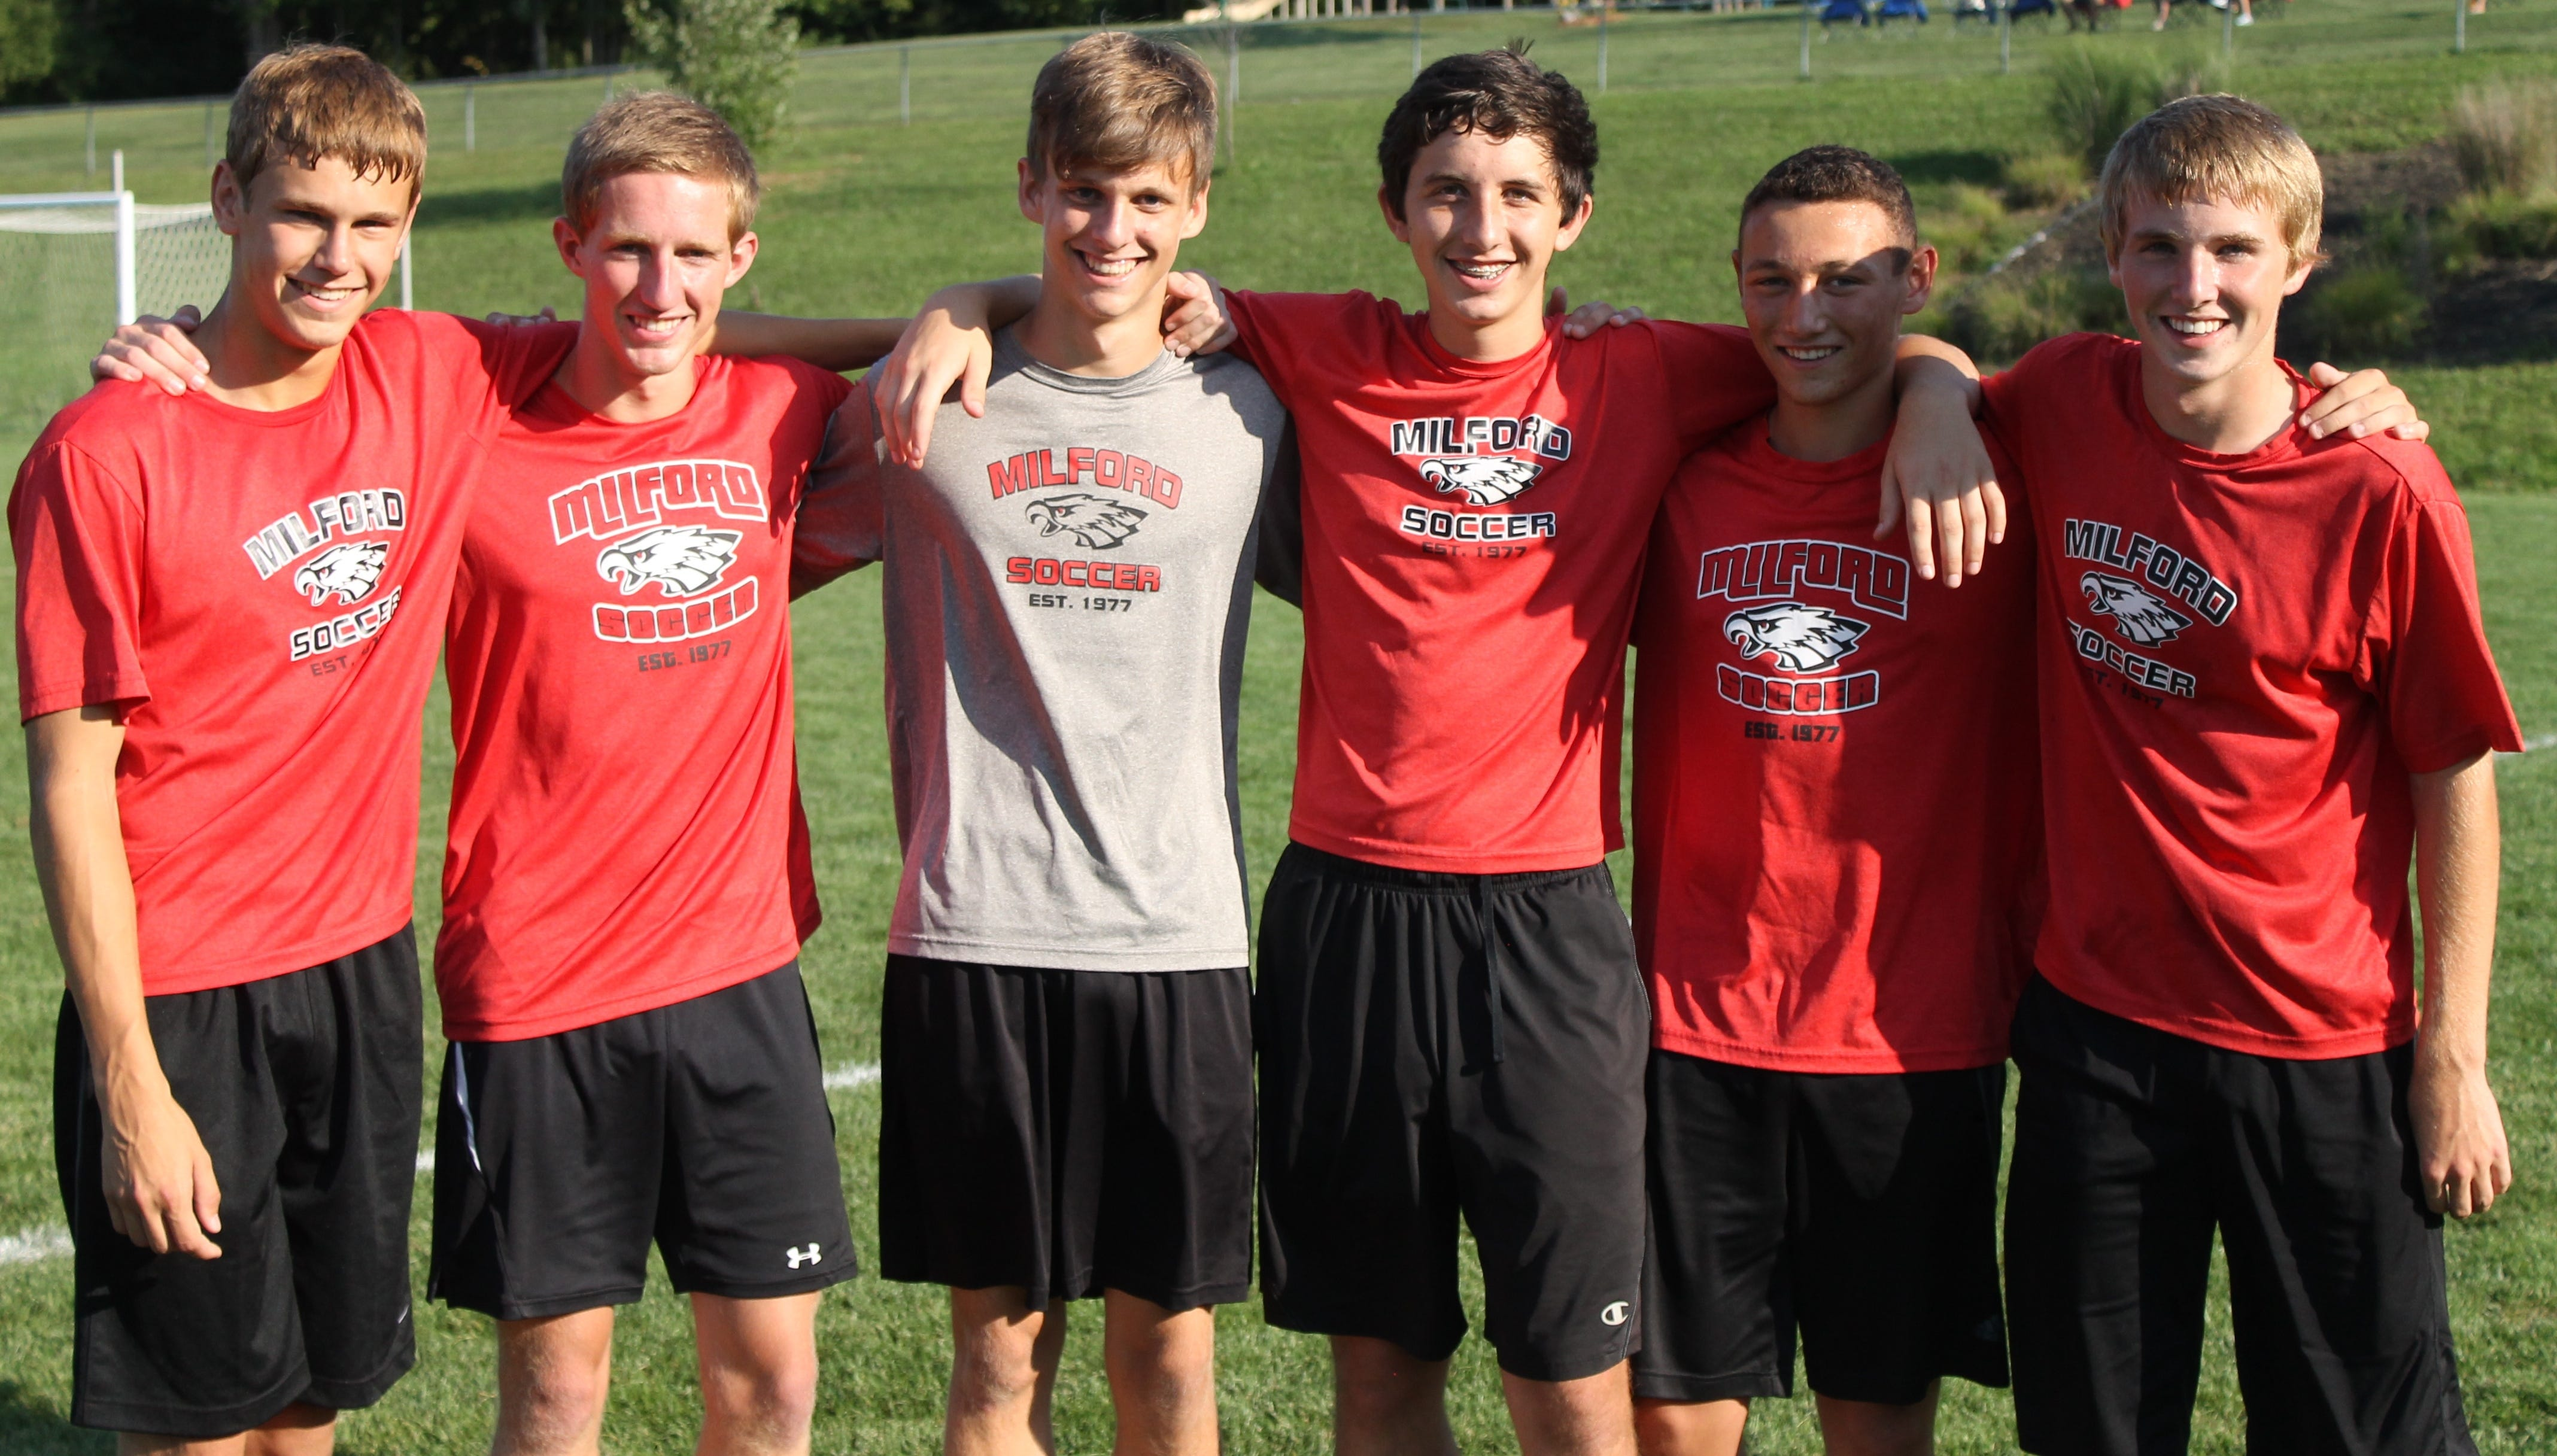 The 2014 Milford High School boys soccer team includes six seniors. From left, they are Owen Lung, captain Jack Burgess, Wyatt Gearhart, Zach Remm, Tanner Sherwood and Xander Johnson.